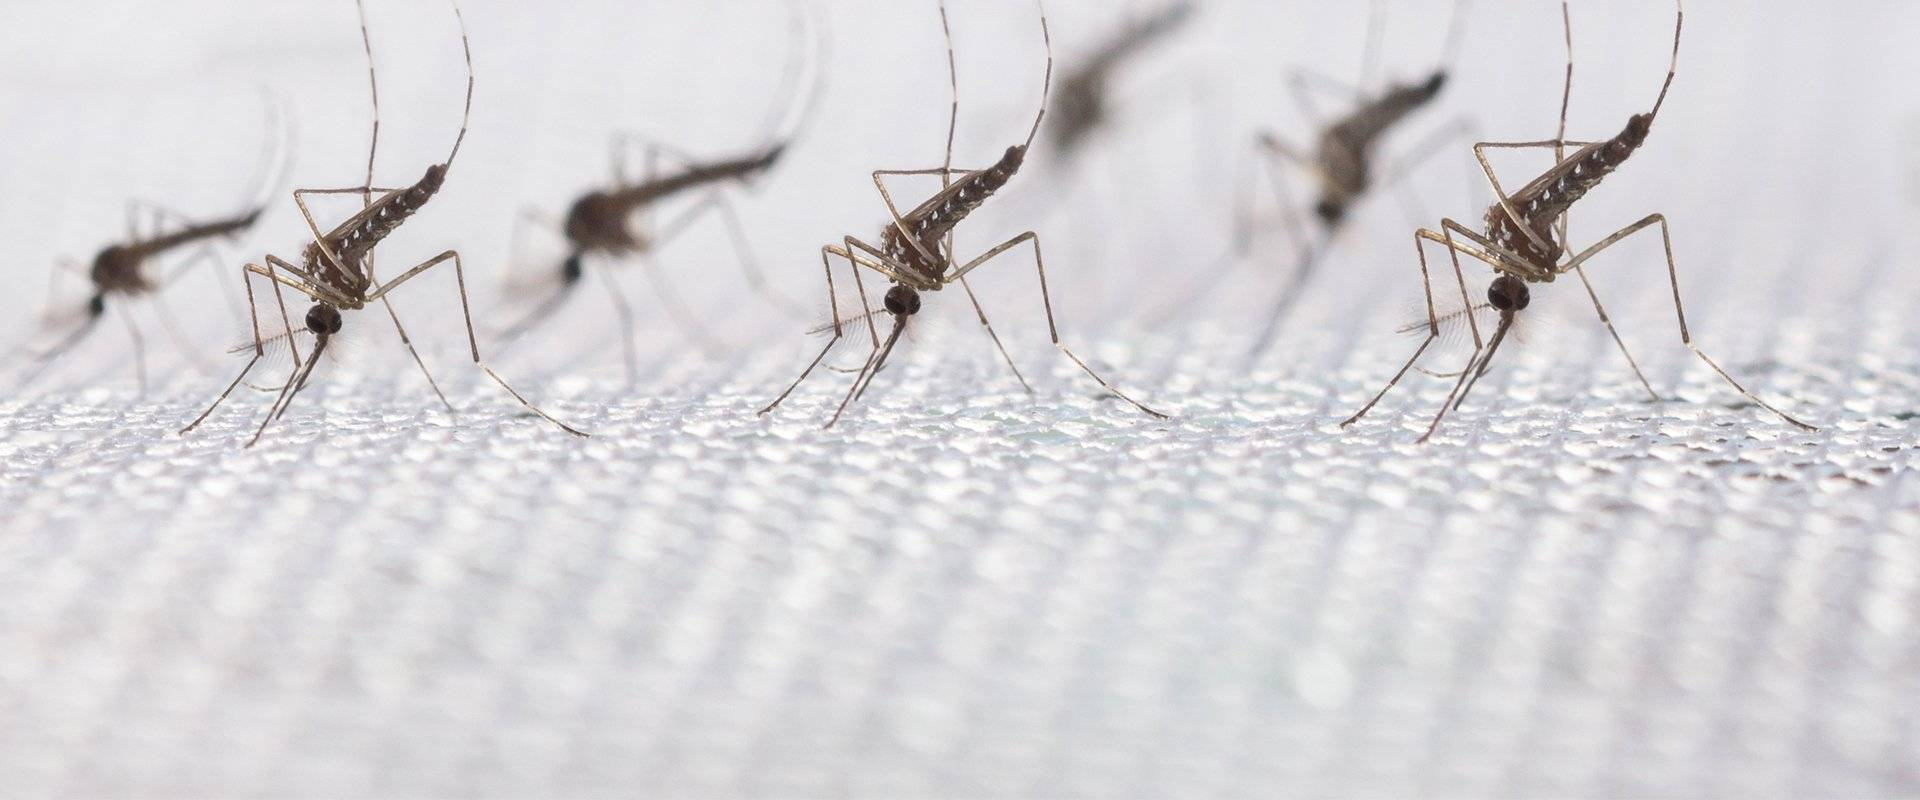 mosquitoes on paper towel